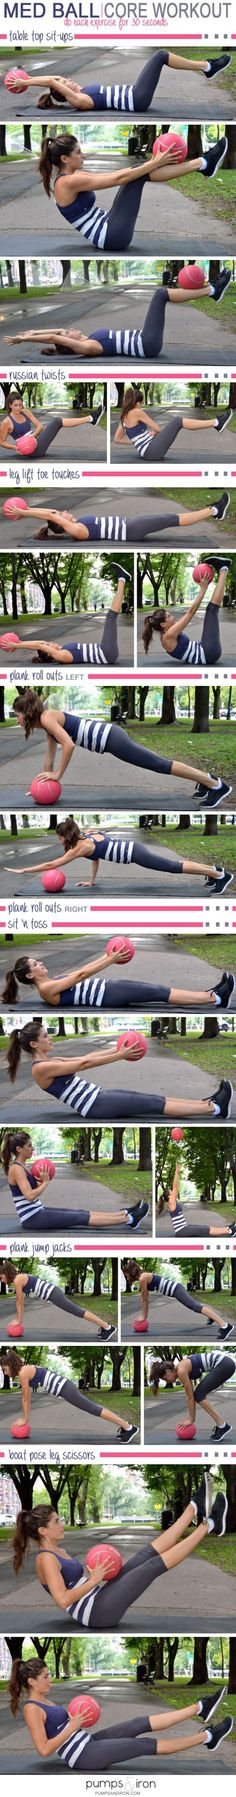 9 Amazing Flat Belly Workouts To Help Sculpt Your Abs! – Plus Beauty